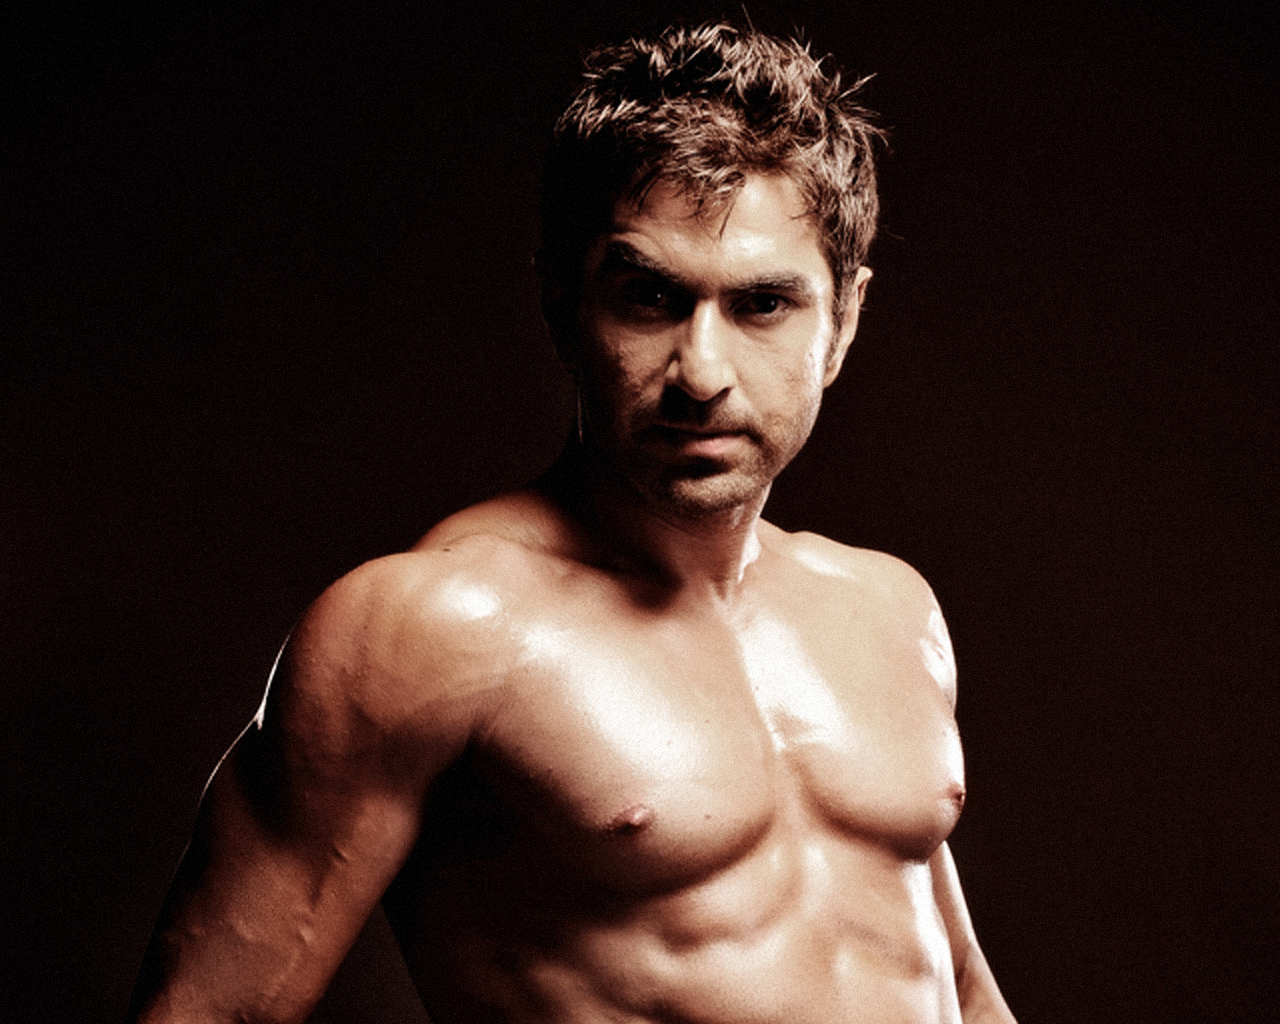 Bollywood Images Tollywood Actor Jeet Shirtless Hd Wallpaper And